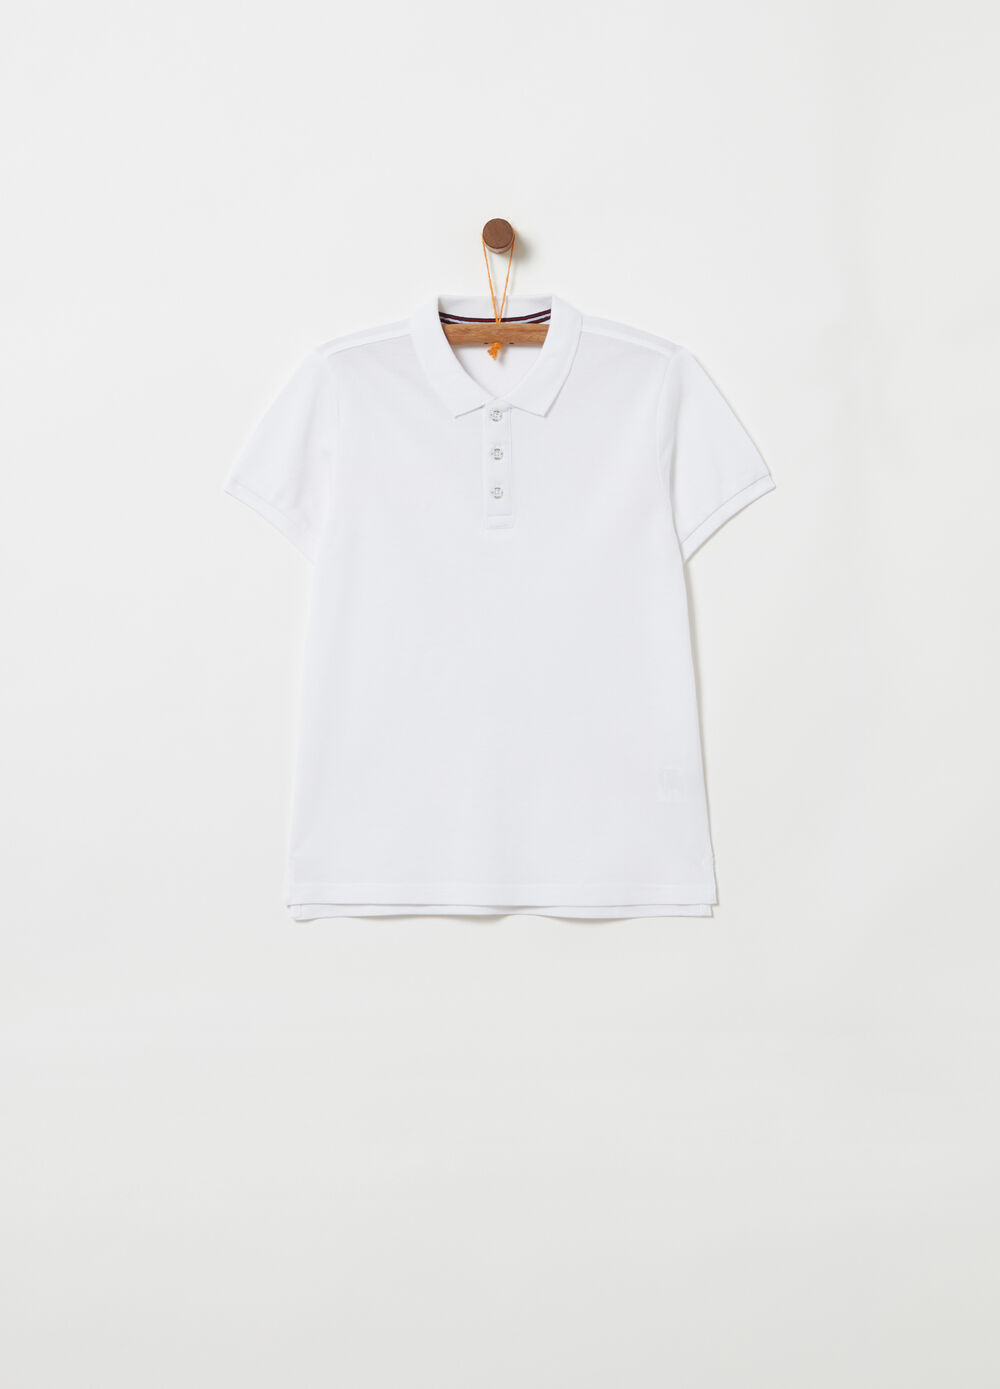 100% cotton piquet polo shirt with ribbing